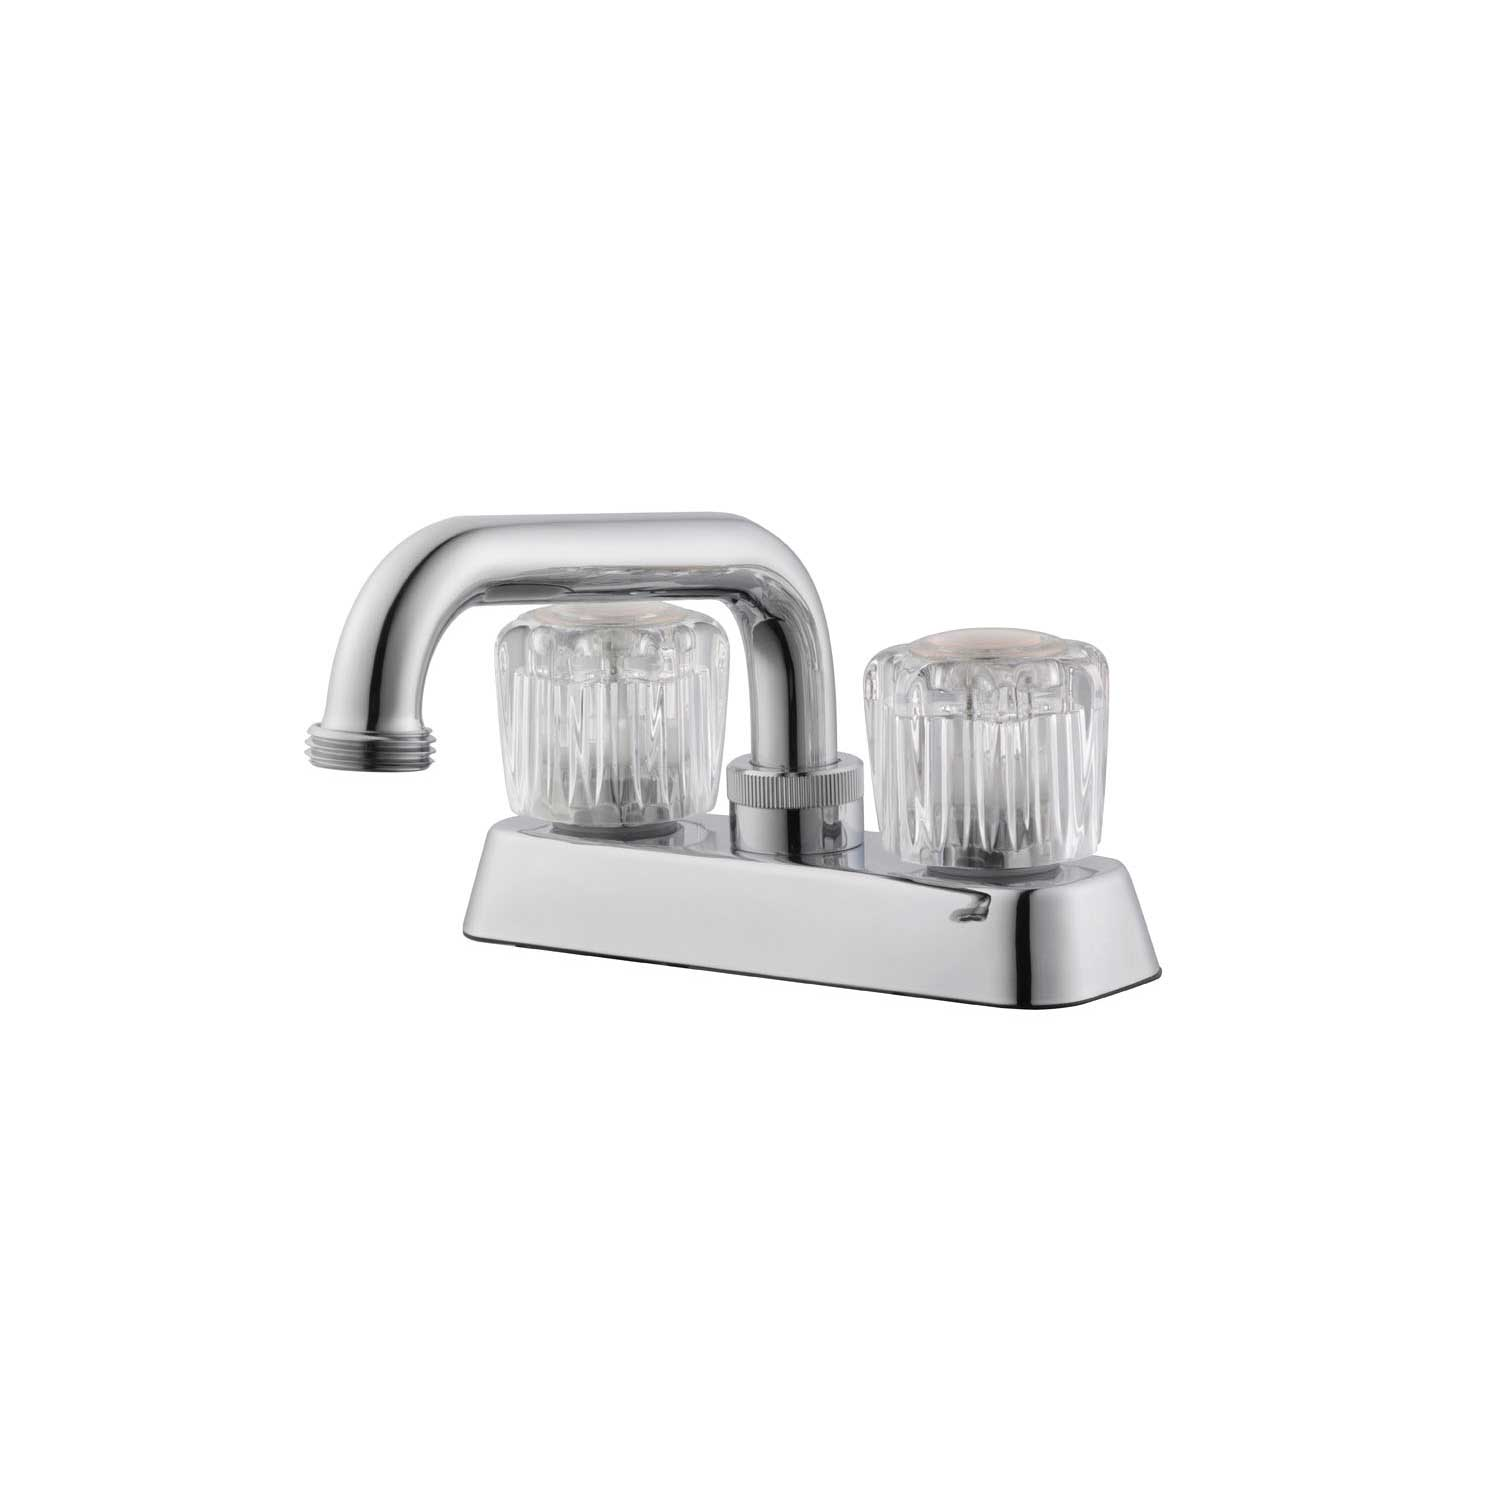 Design House Ashland Laundry Tub Faucet, Polished Chrome - 545731